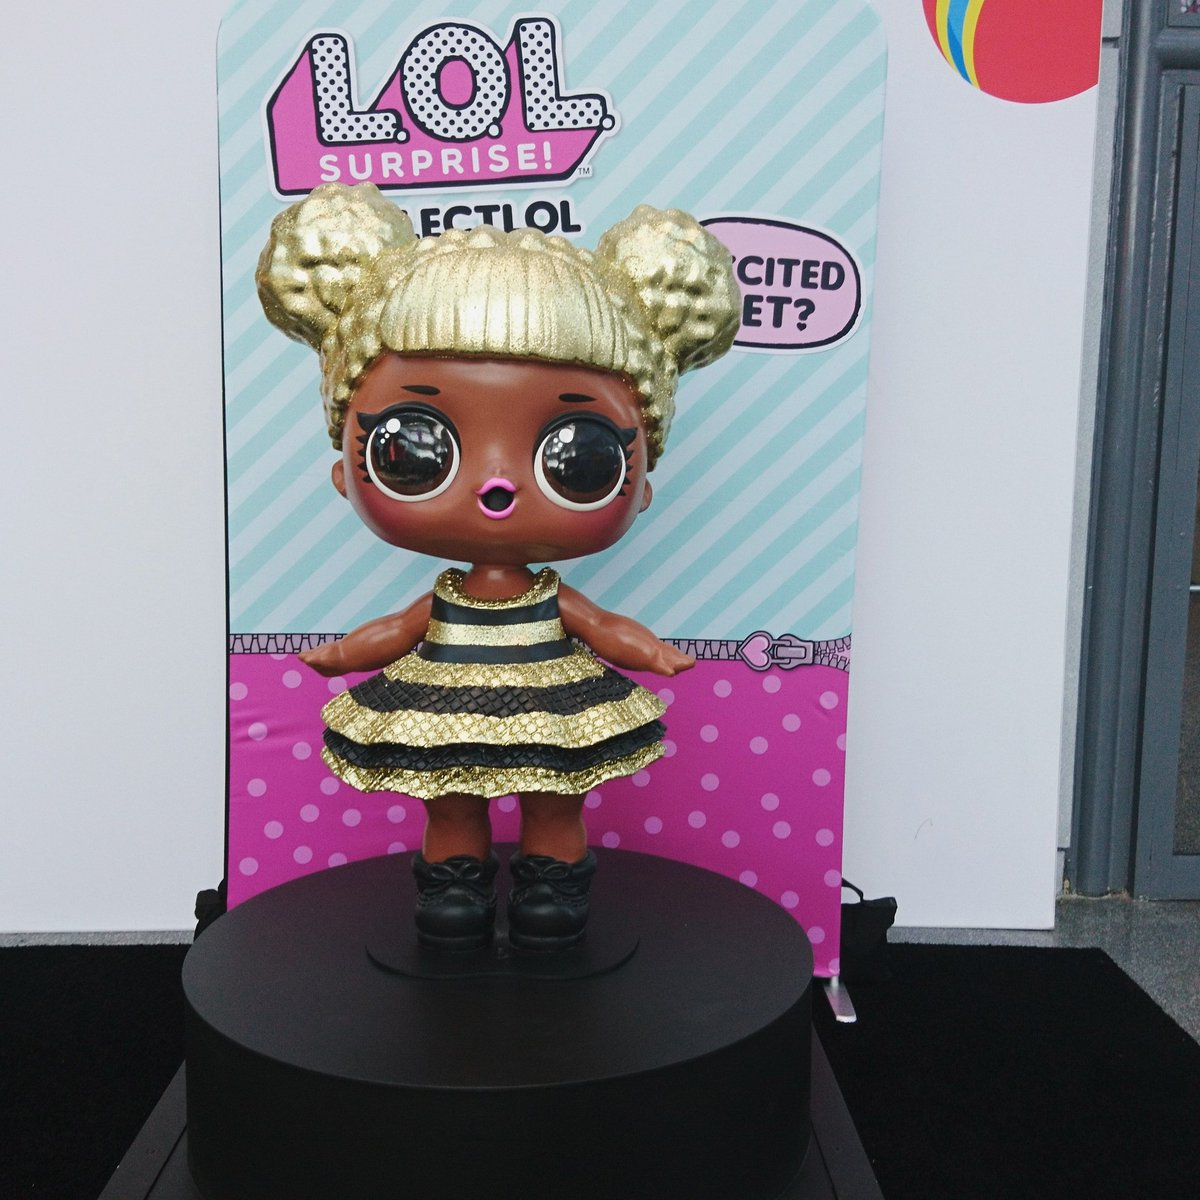 Toy of the Year ist @LOLSurpriseDoll - congrats! #tfny #TFNY2020pic.twitter.com/XG5y2MIsCC